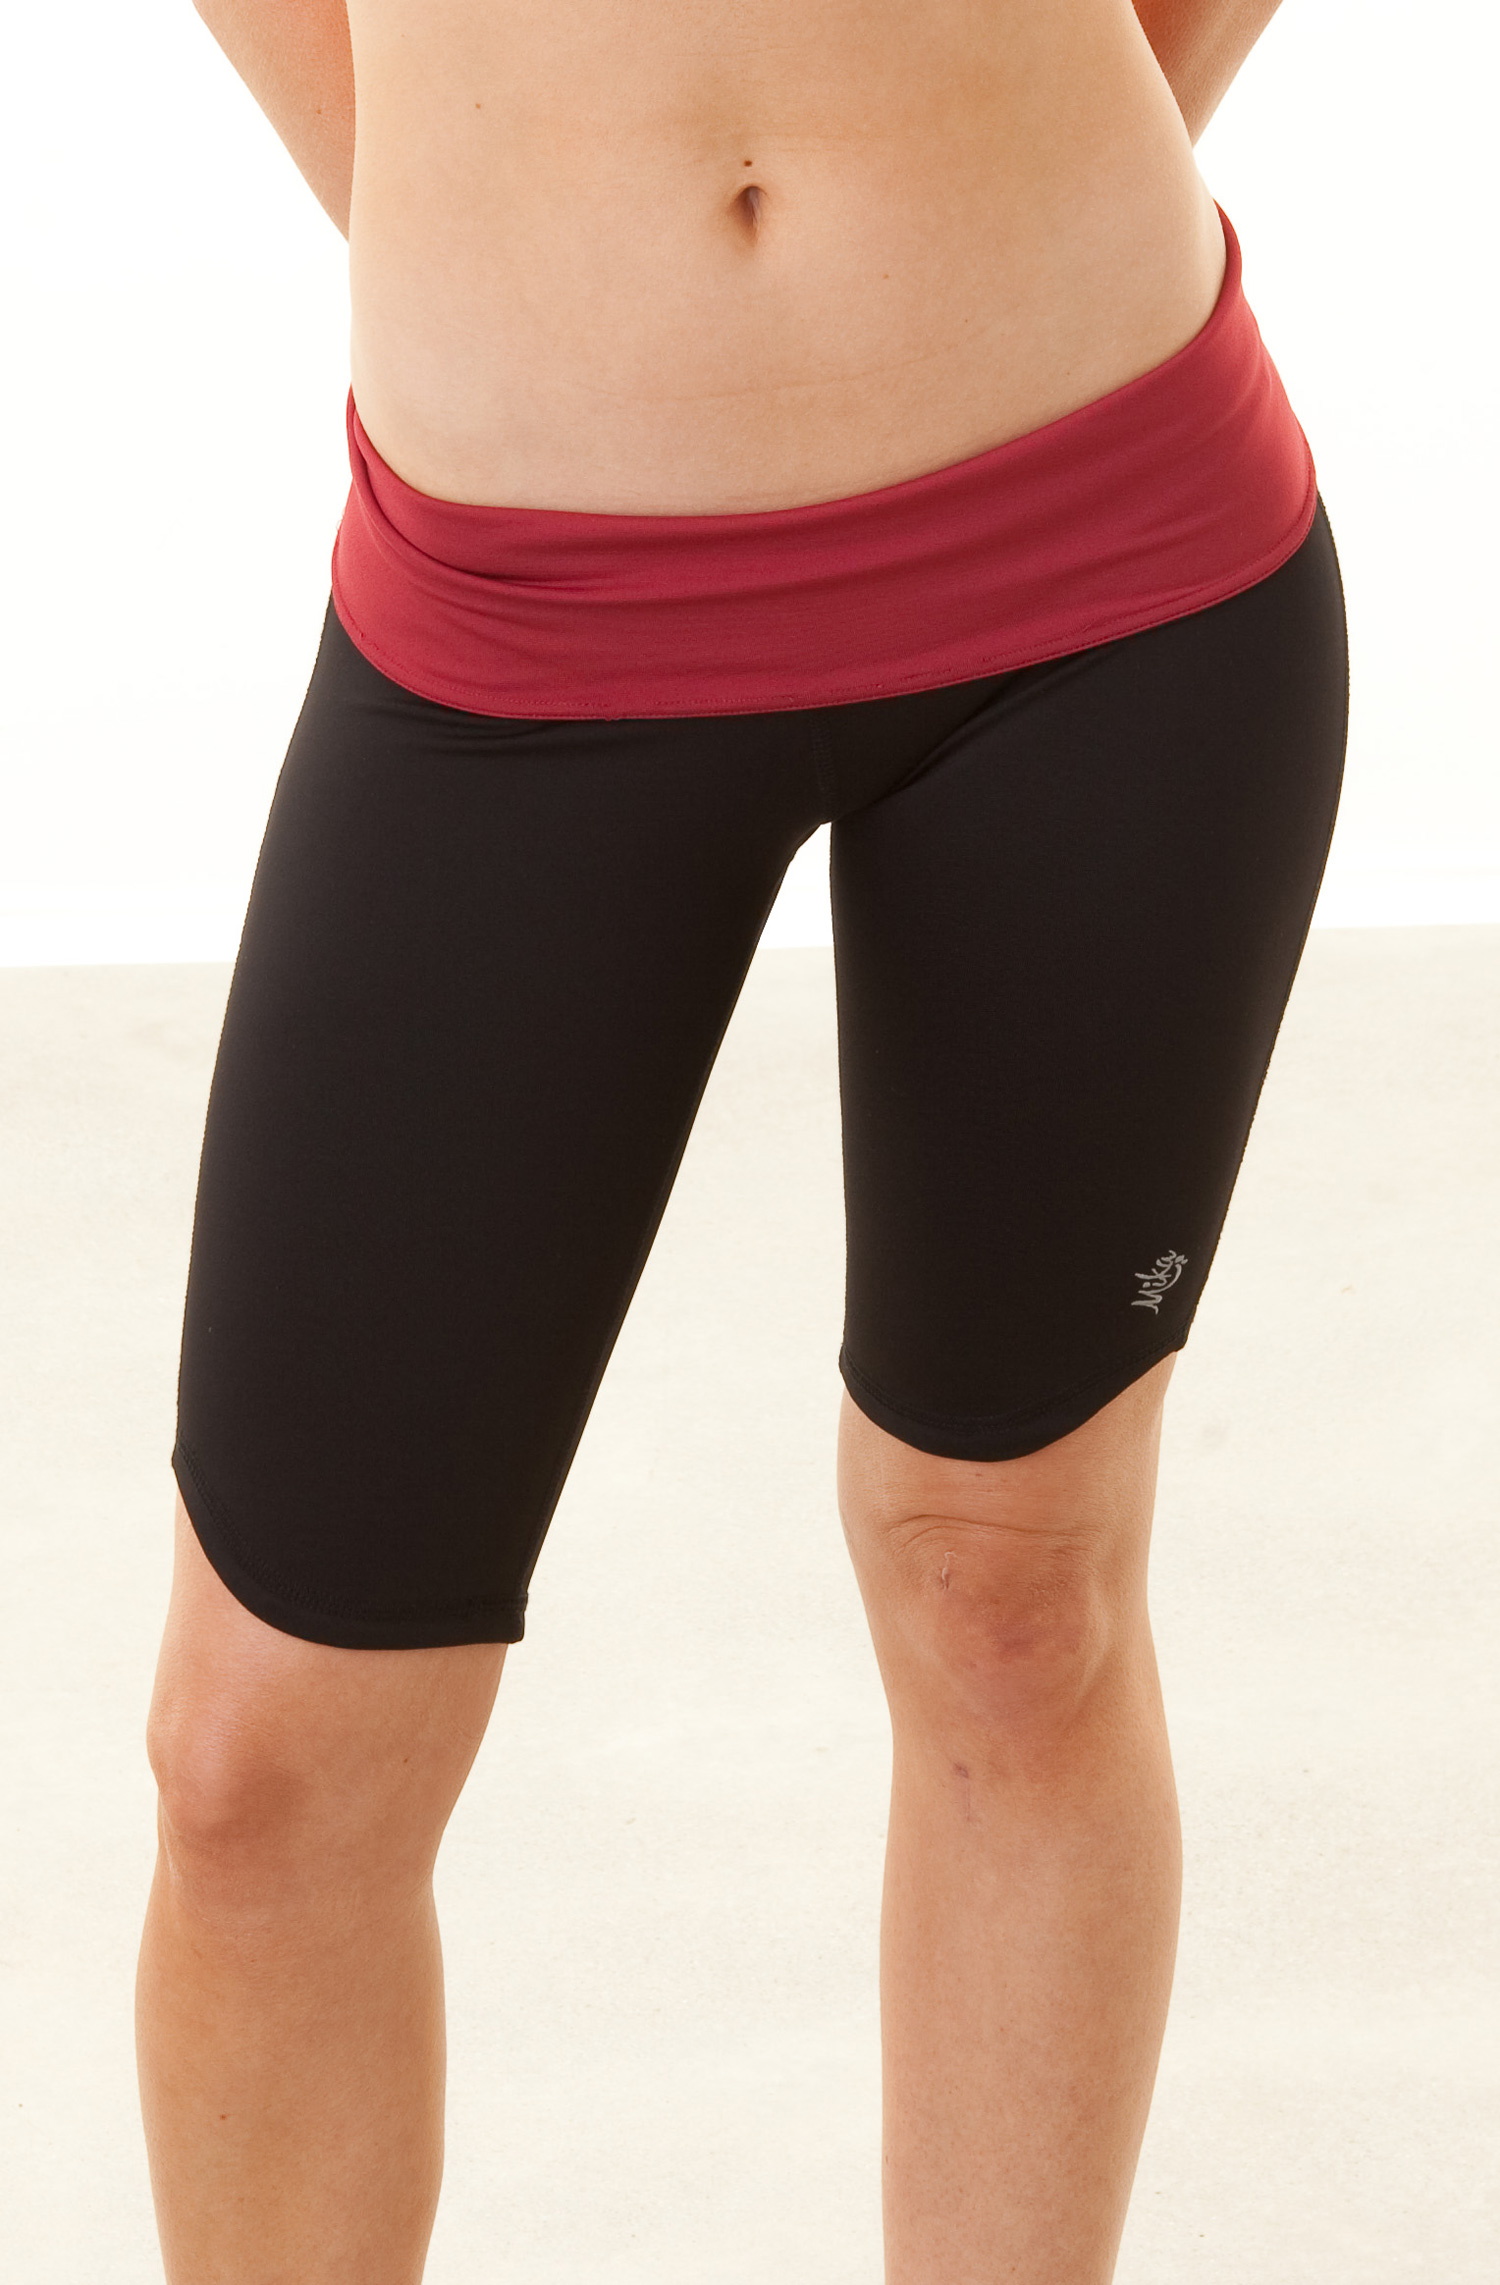 Just Above the Knee Fold-over shorts